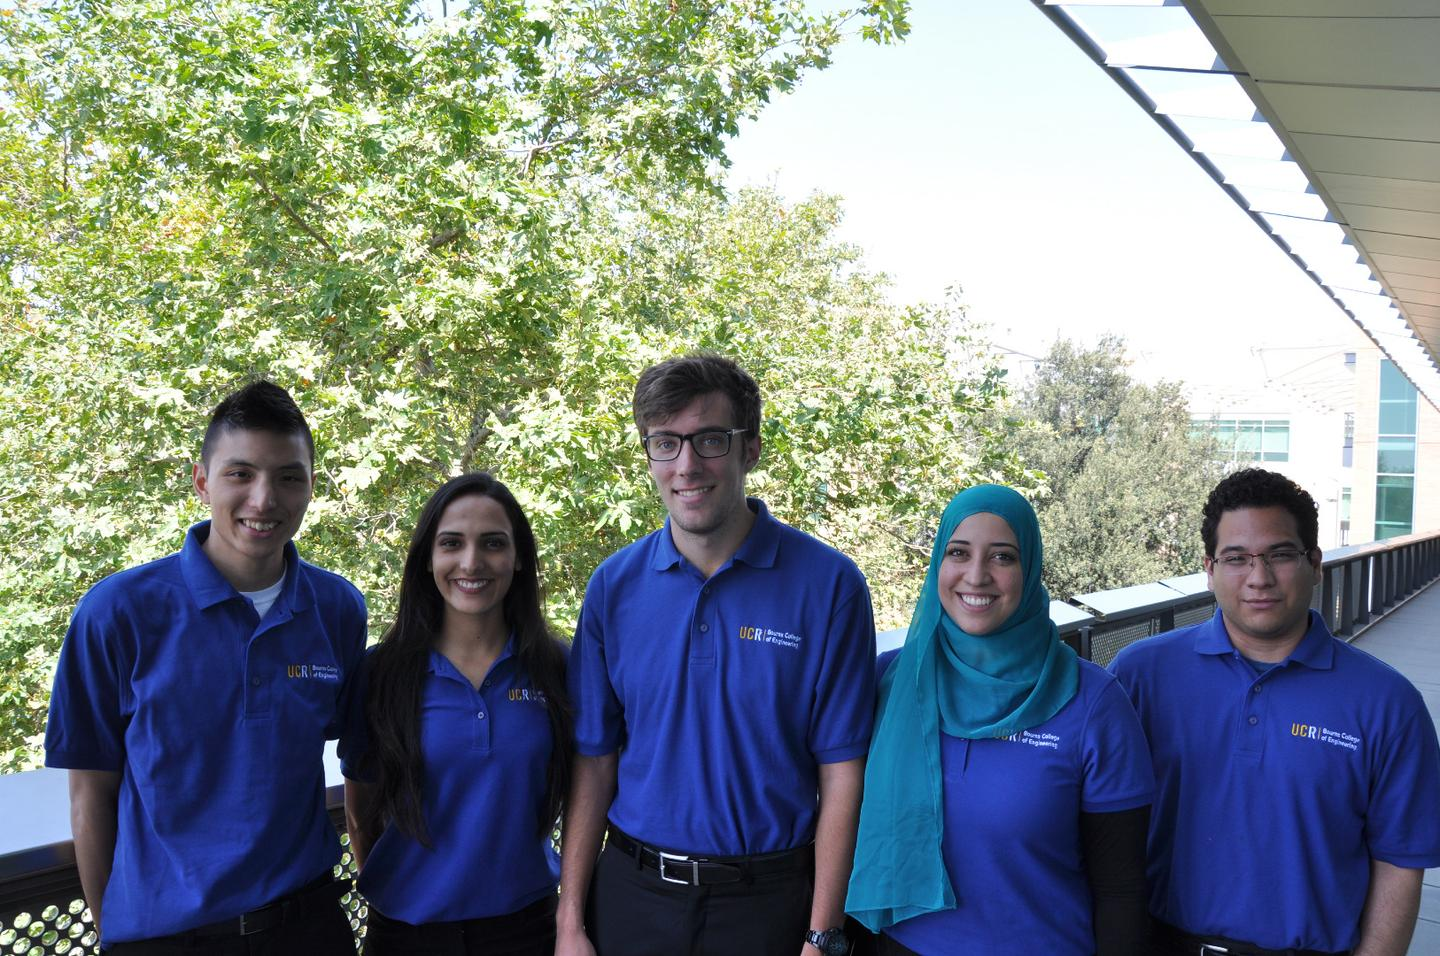 The Husk-to-Home team, from left – Chris Yang, Lamees Alkhamis, Colin Eckerle, Jeniene Abugherir and Joel Sanchez